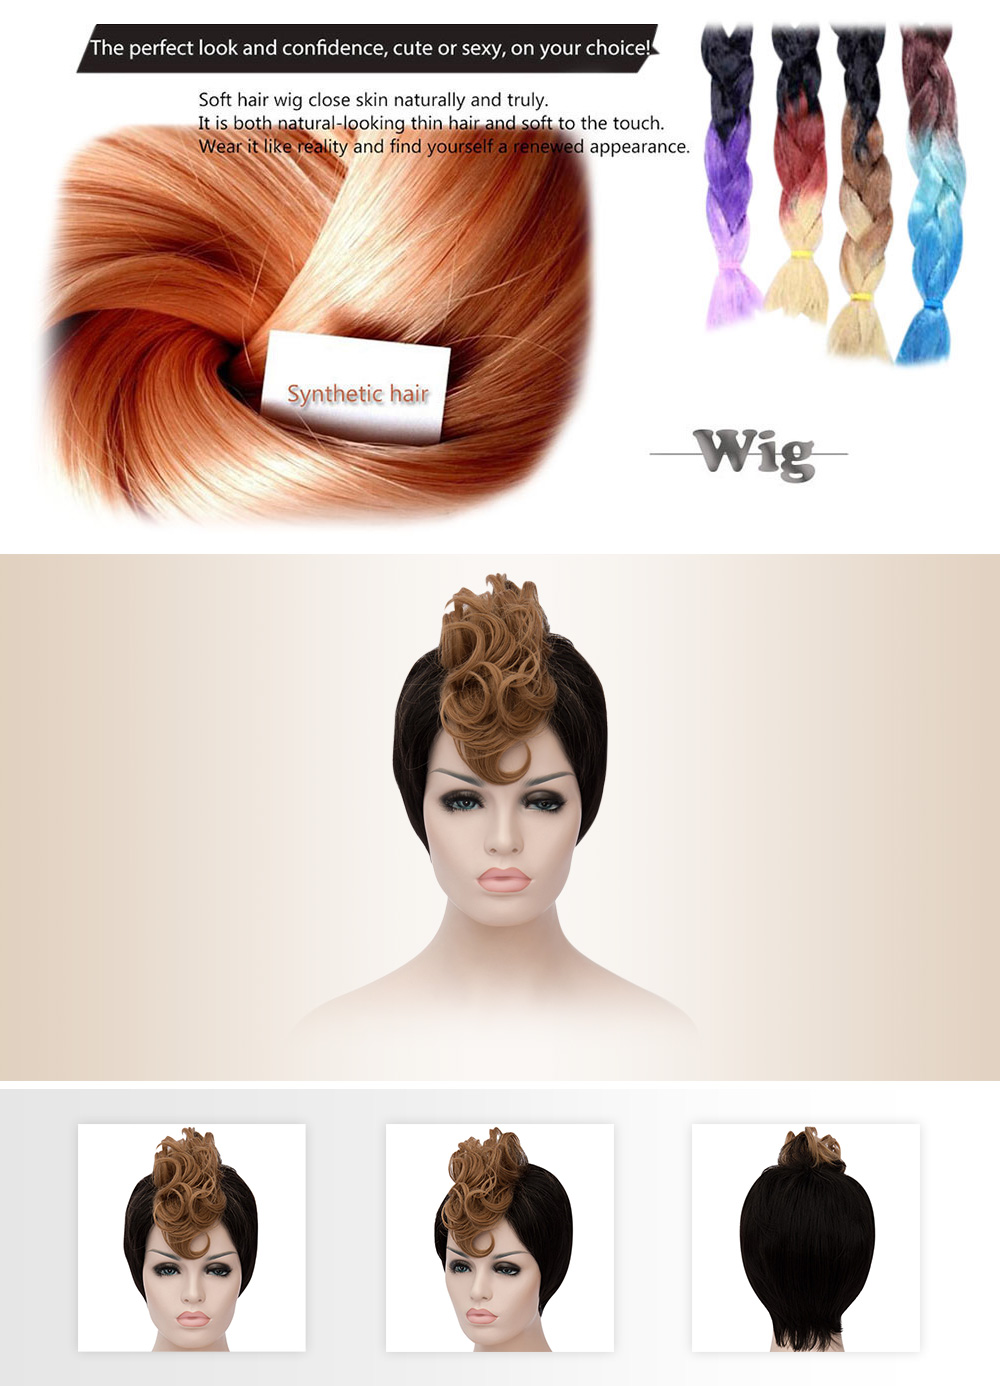 Inspiring Short Spiky Hair Cutting Mixed Color Synthetic Wigs for Women